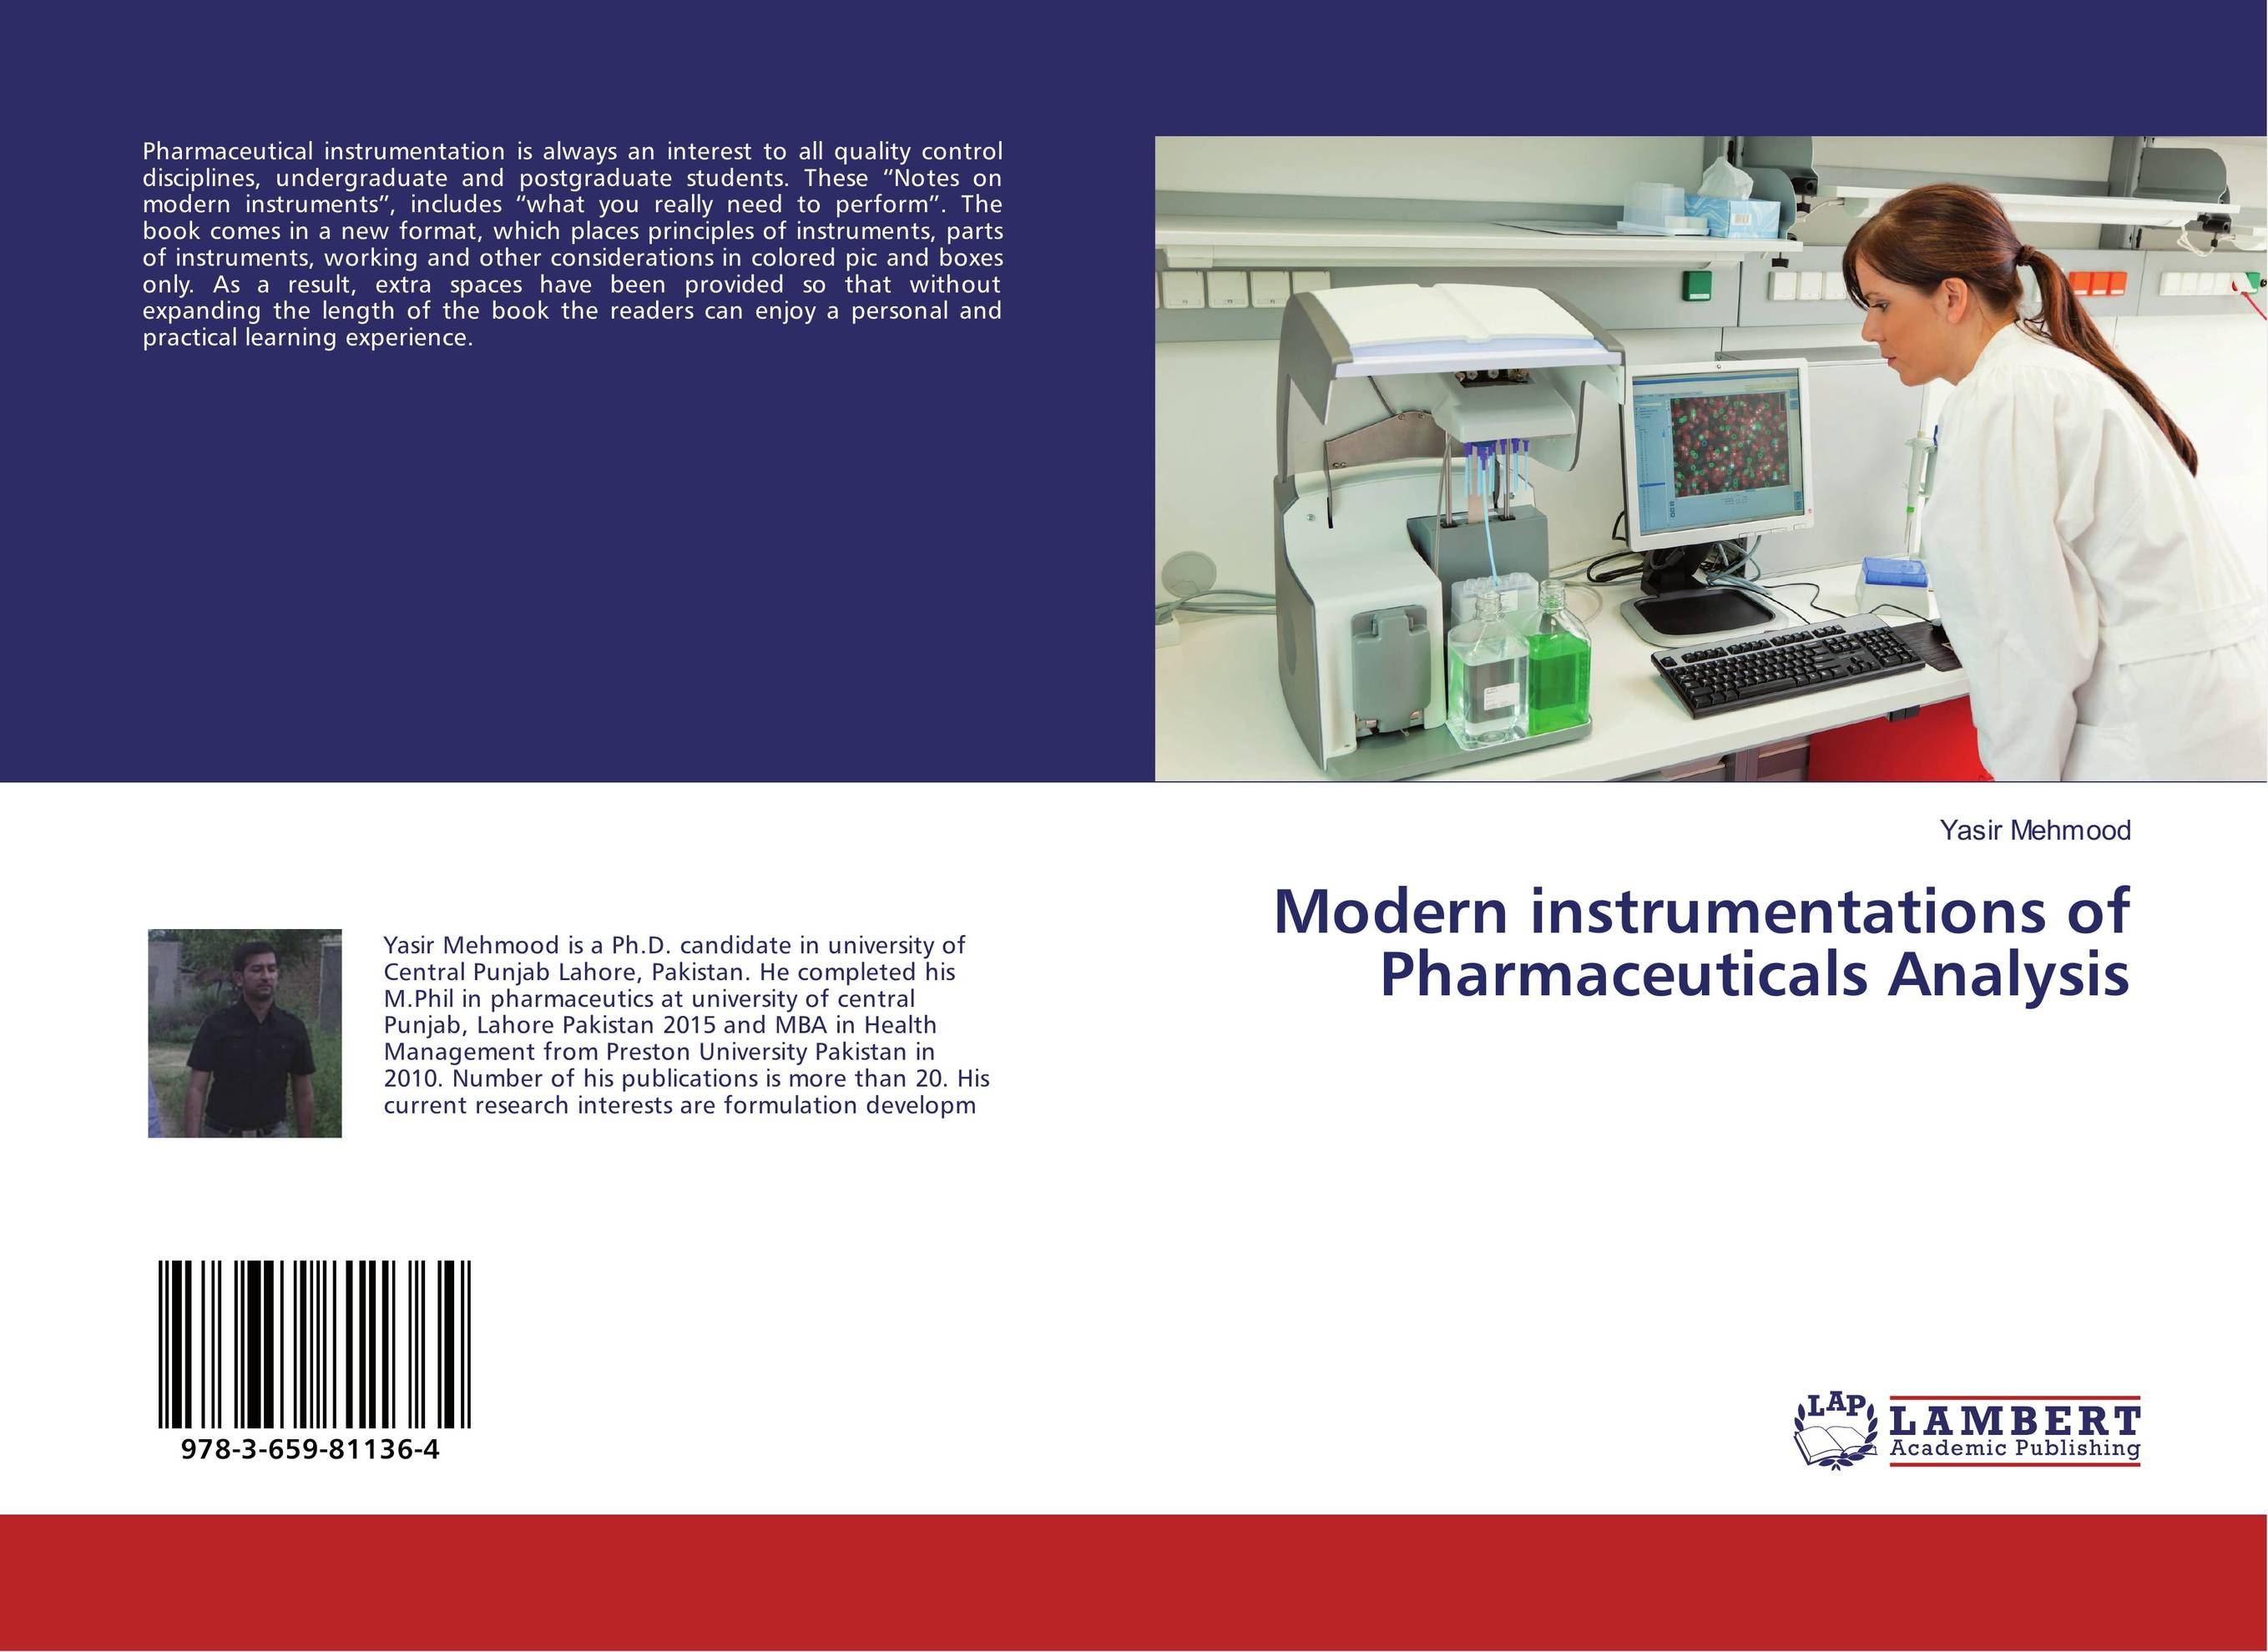 Modern instrumentations of Pharmaceuticals Analysis pharmaceuticals